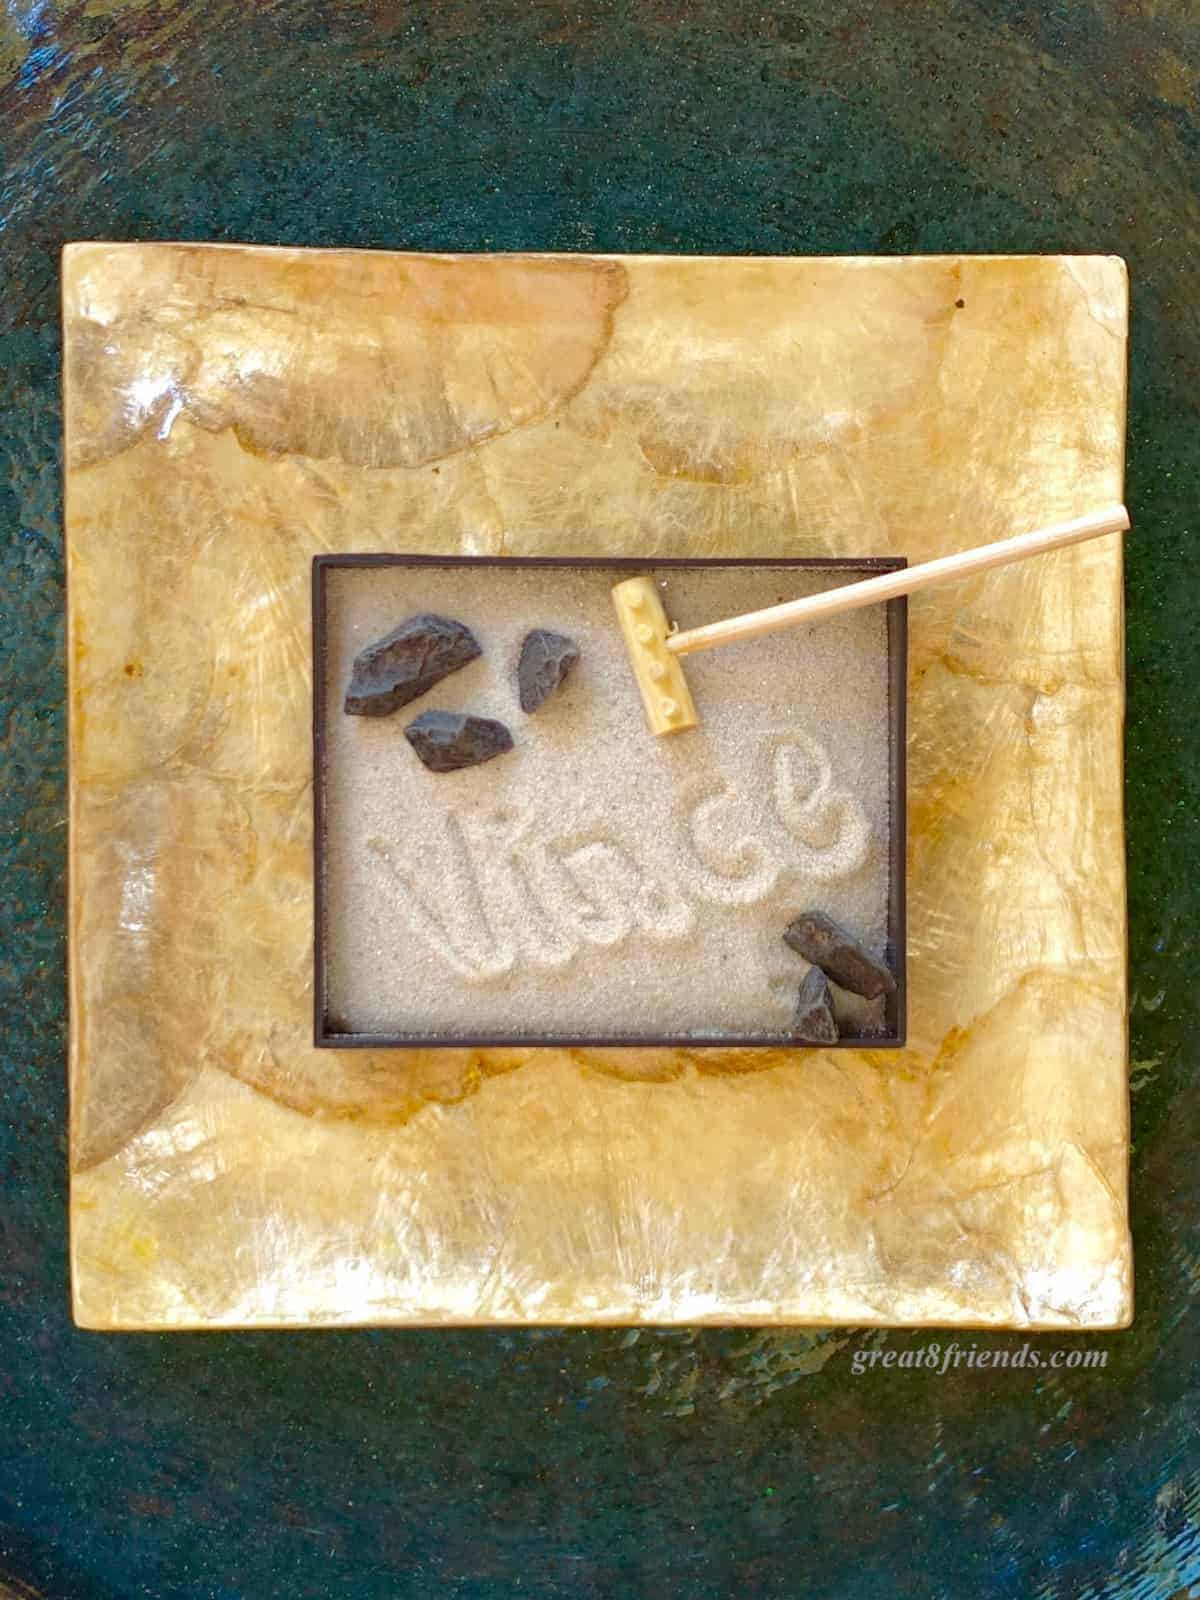 Overhead shot of a mini Zen garden with 4 small rocks, a small rake and the name Vince written in the sand.